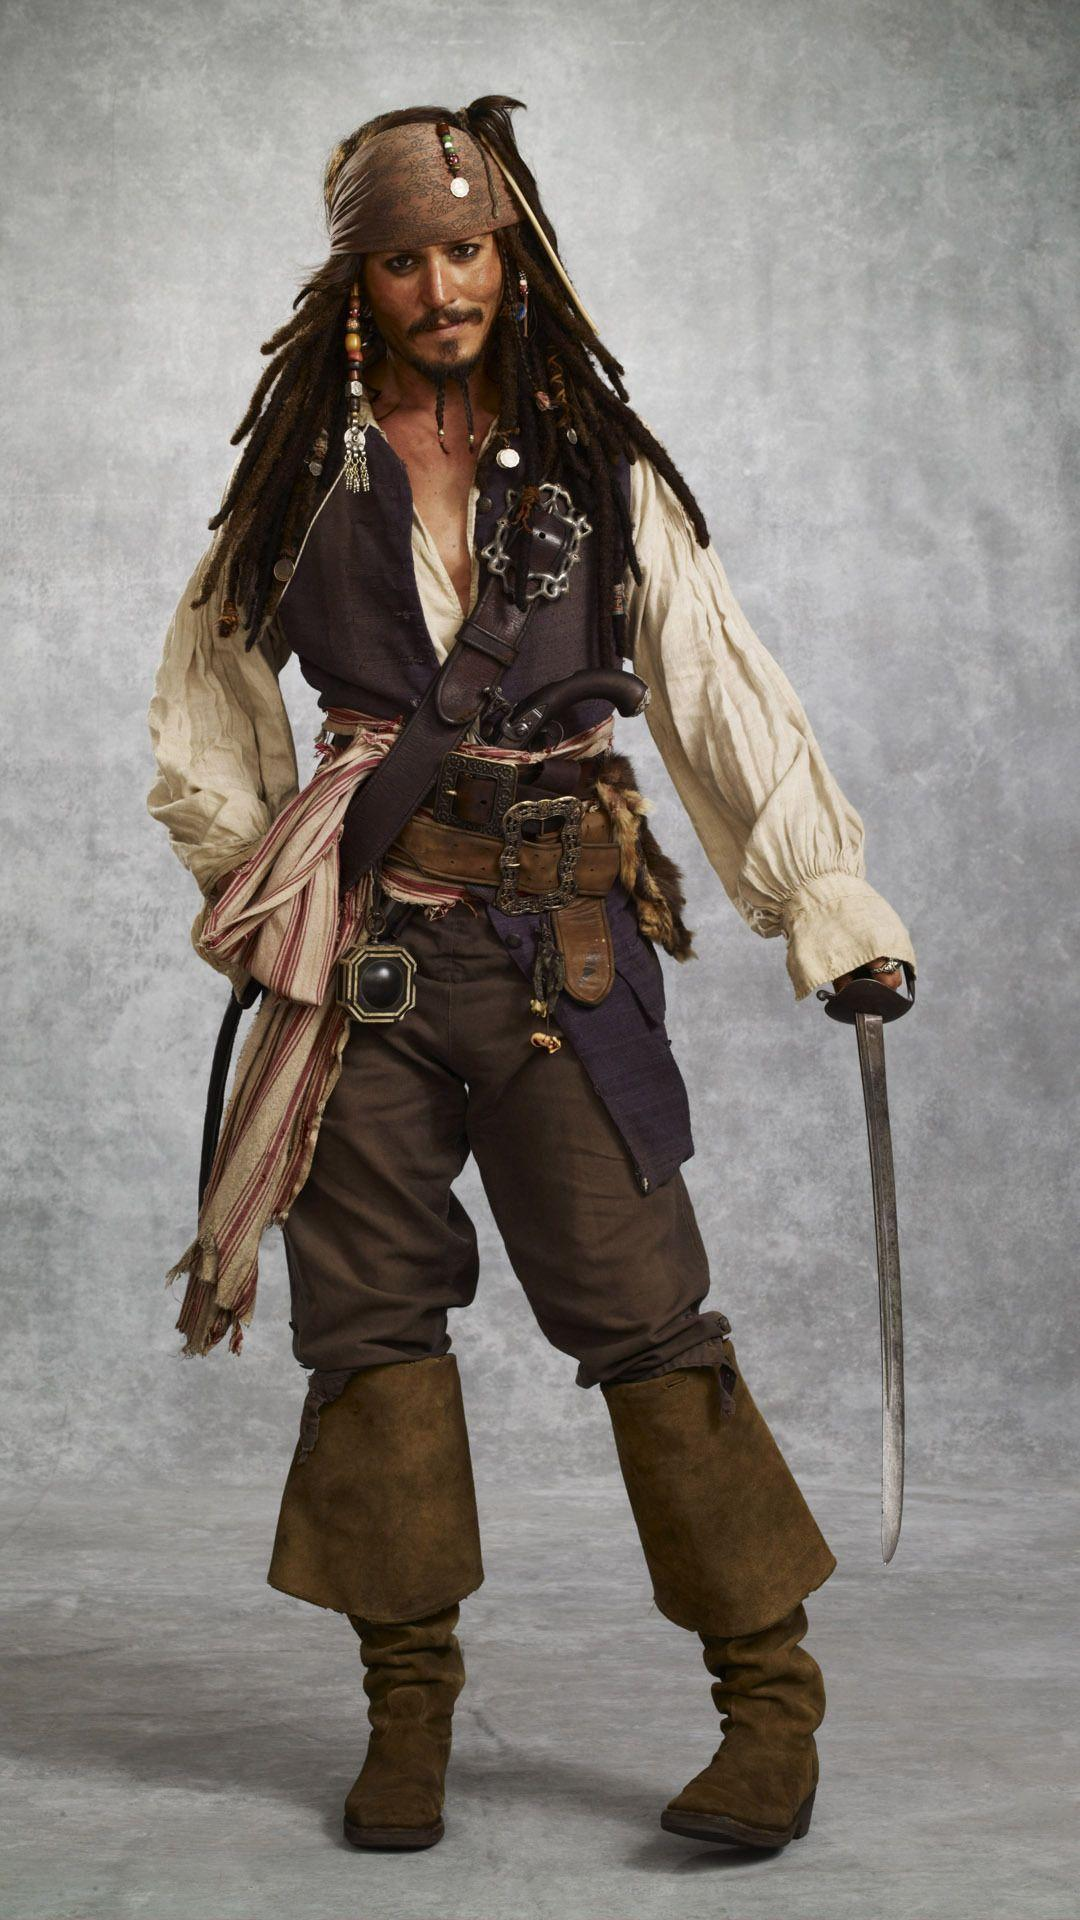 Captain Jack Sparrow Mobile Wallpaper 9110